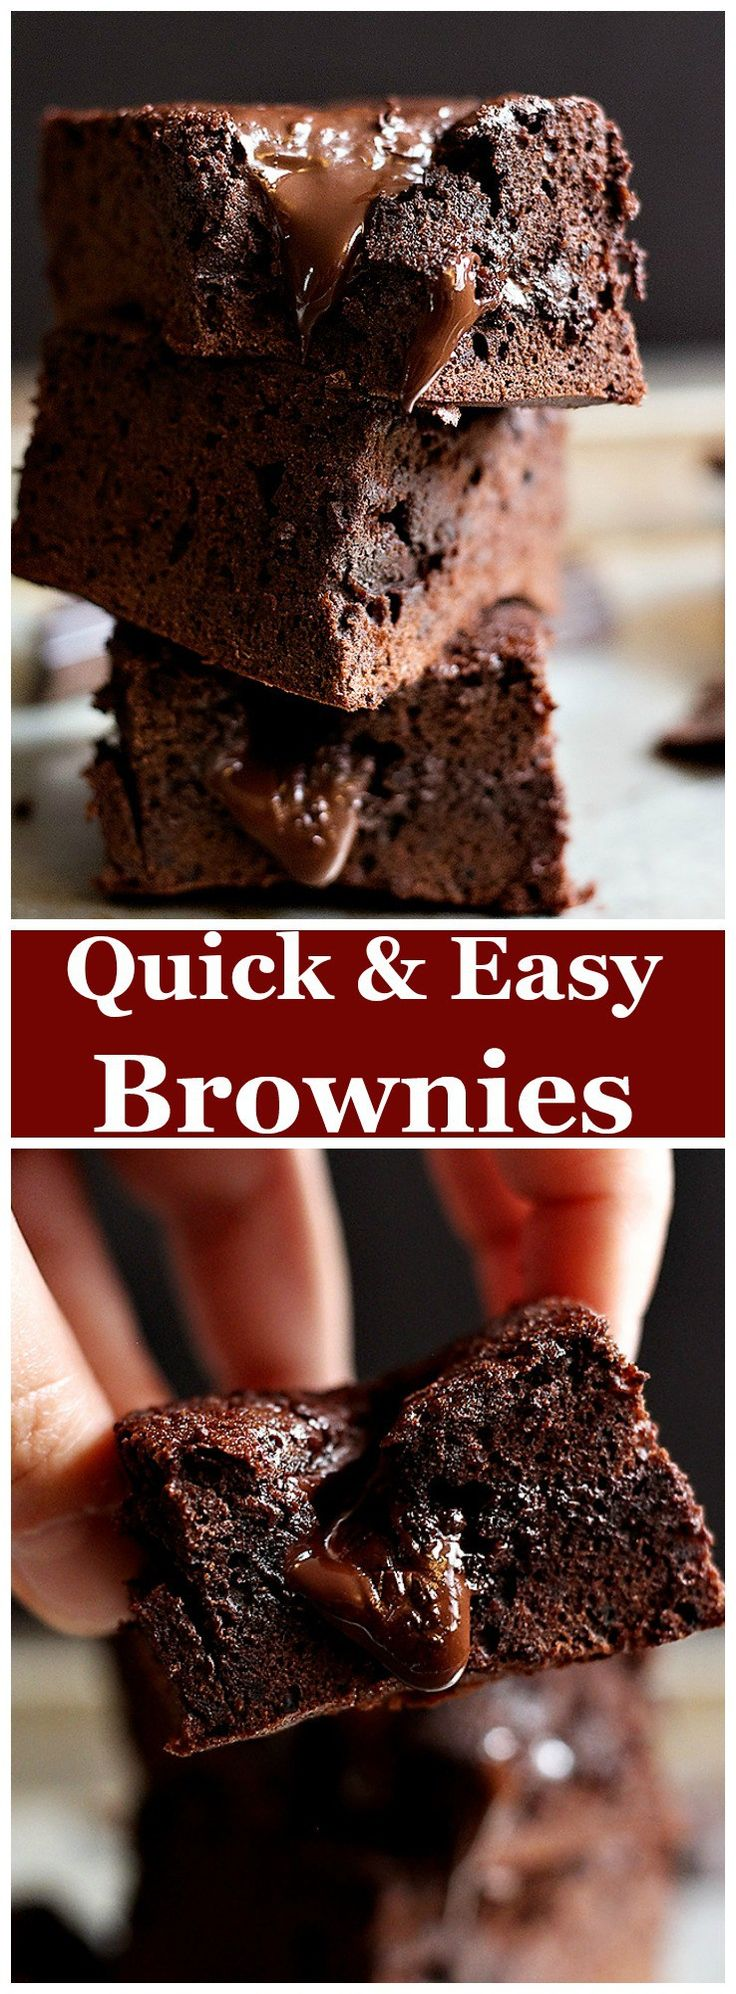 Quick and Easy Brownies Recipe • Unicorns in the Kitchen